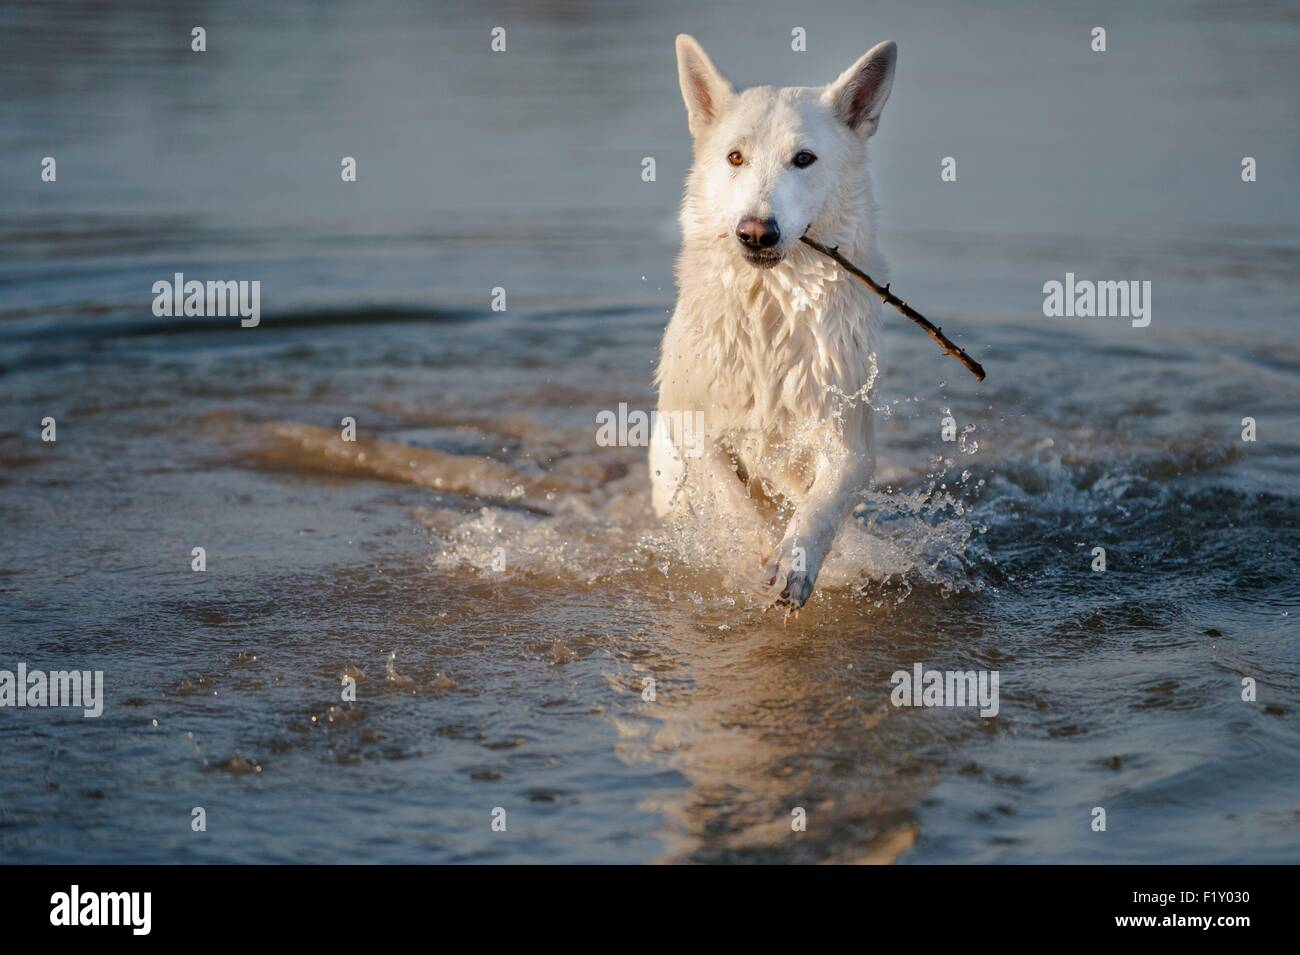 France, Isere, dog (Canis lupus familiaris), white Swiss sheepdog, in water - Stock Image